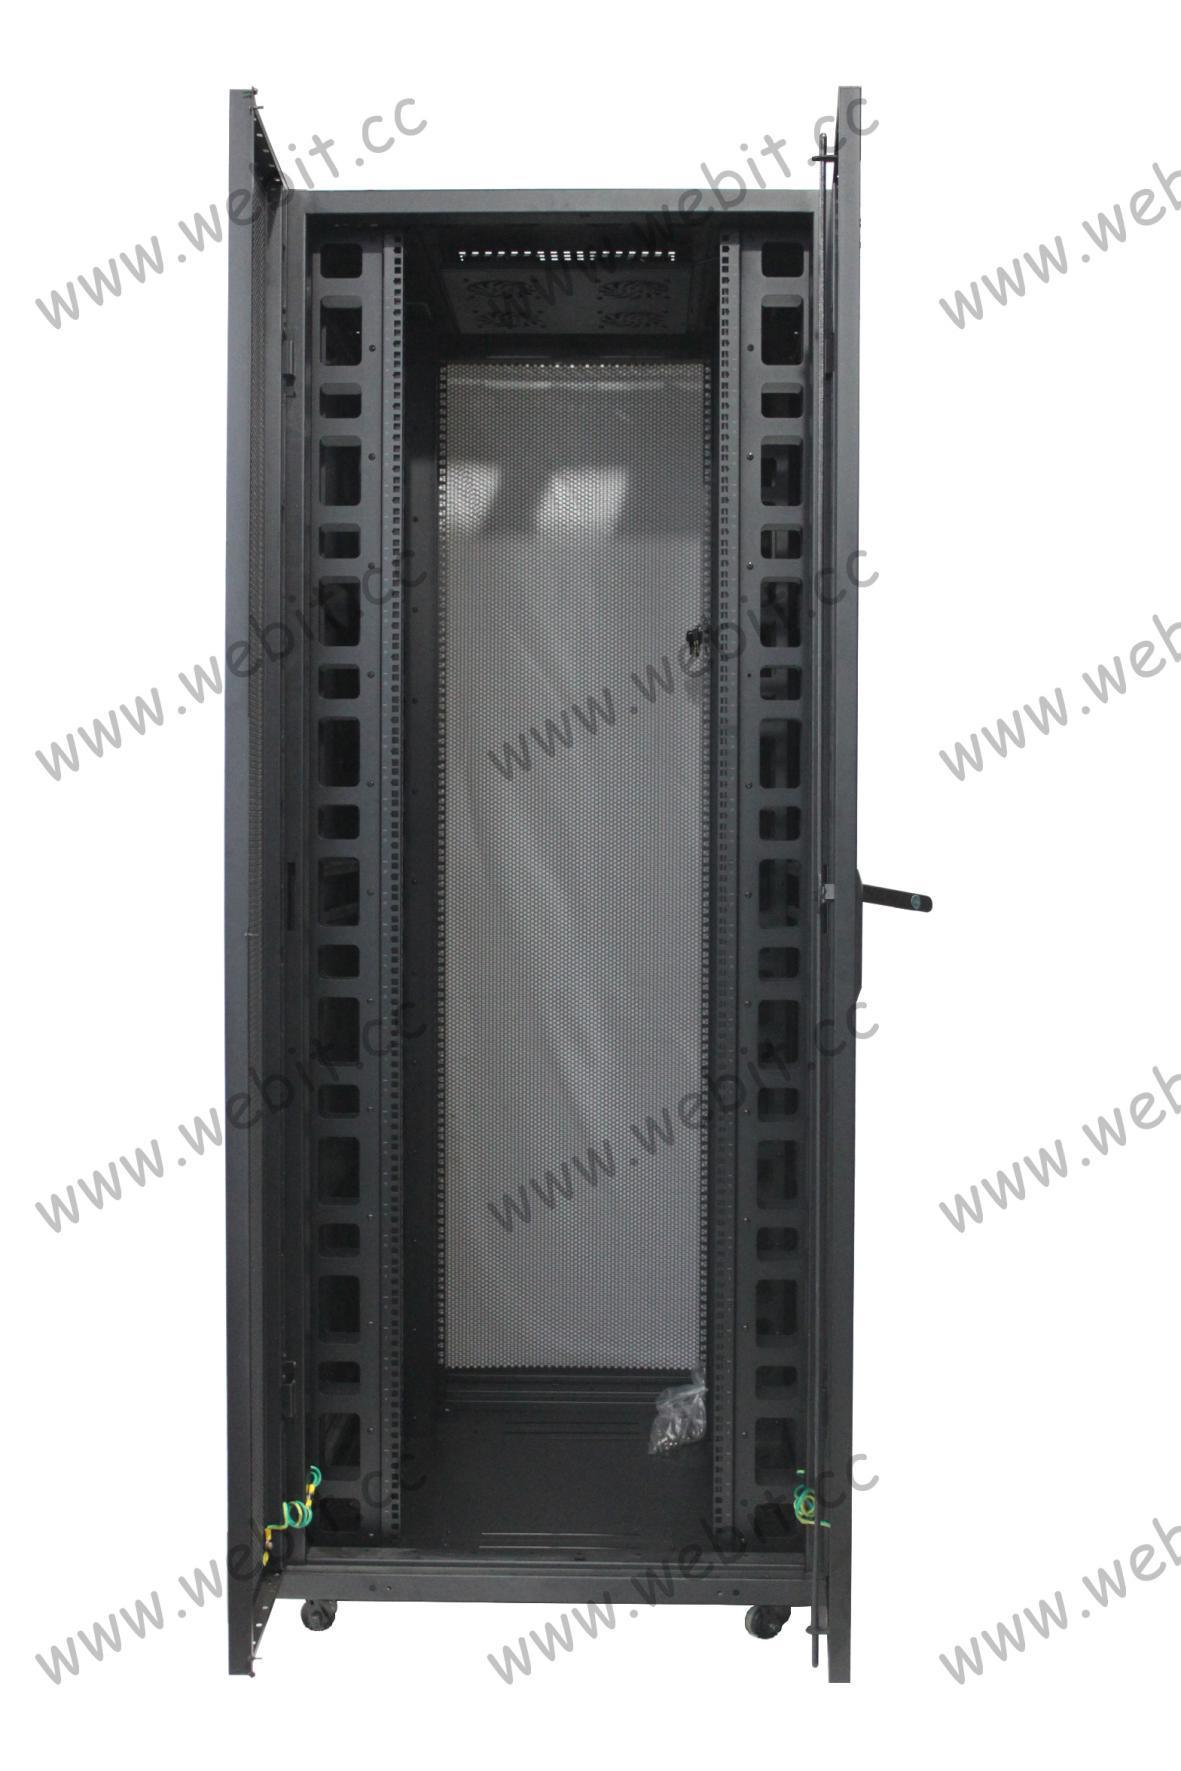 Heavy Duty Series Server Rack for Data Center